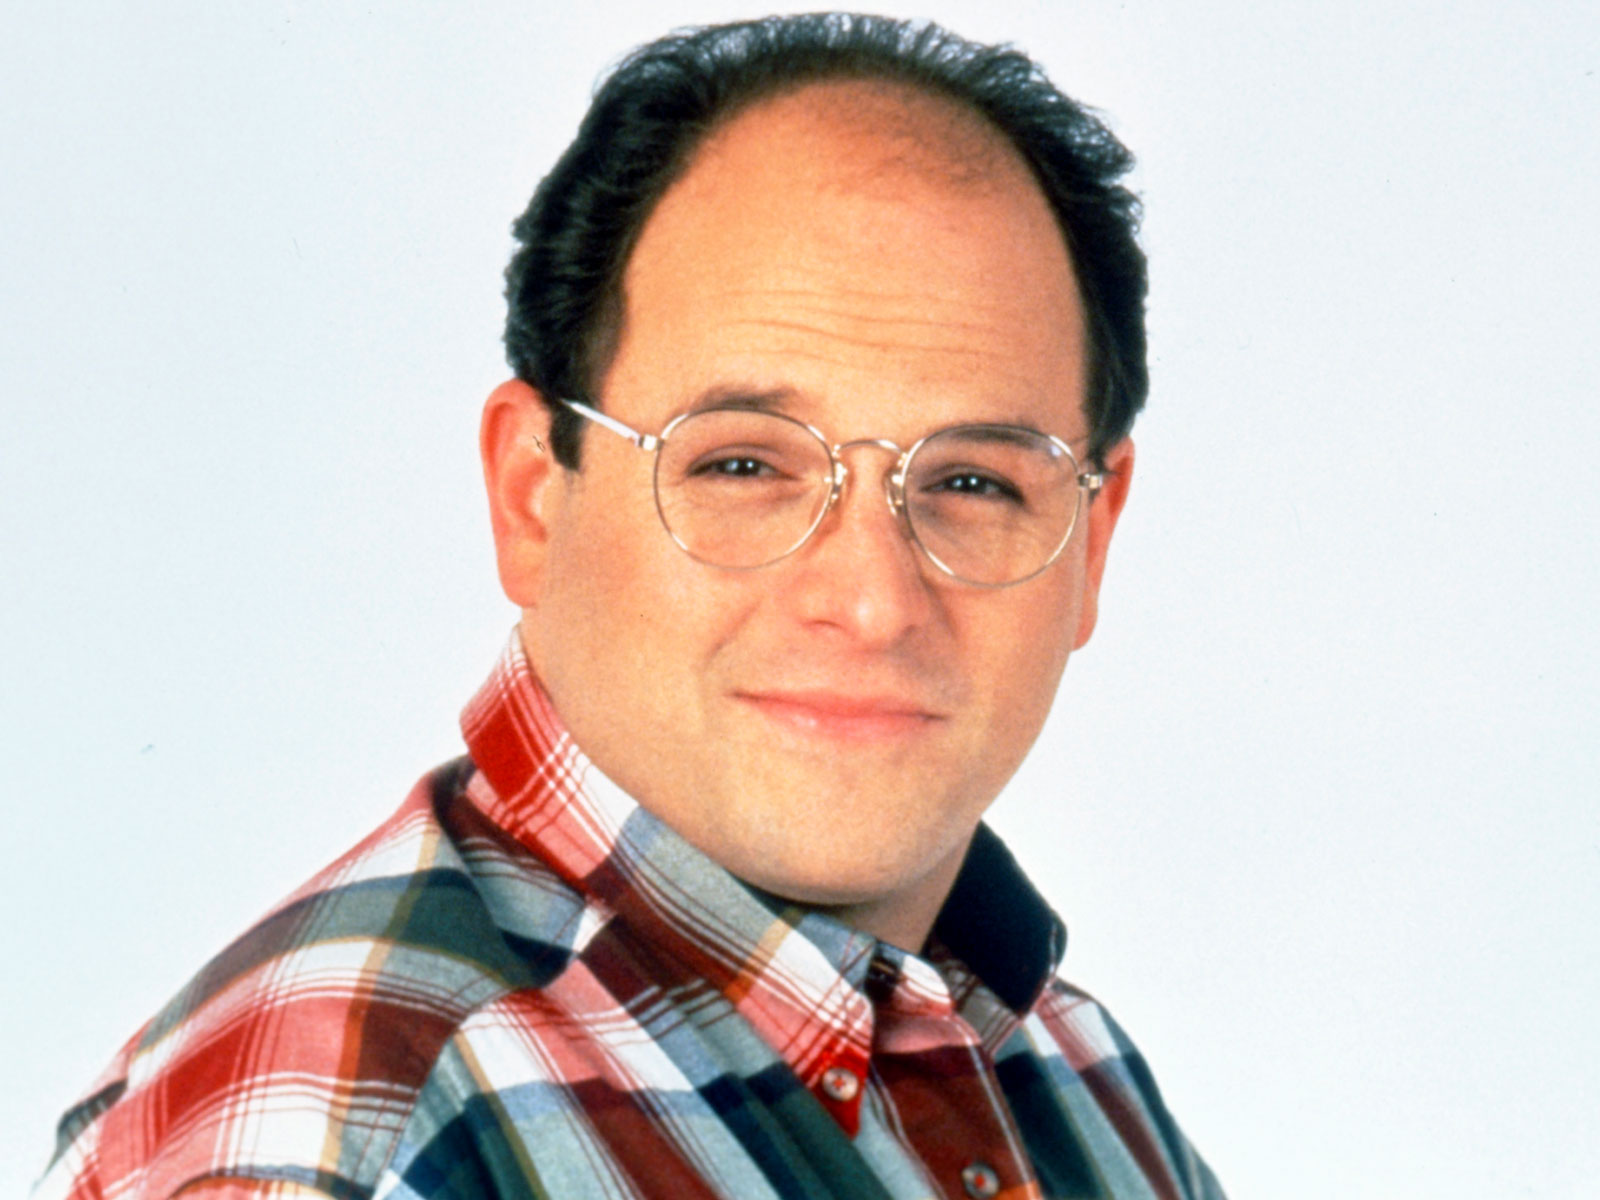 Smiling Jason Alexander wearing red and white check shirt and spectacles